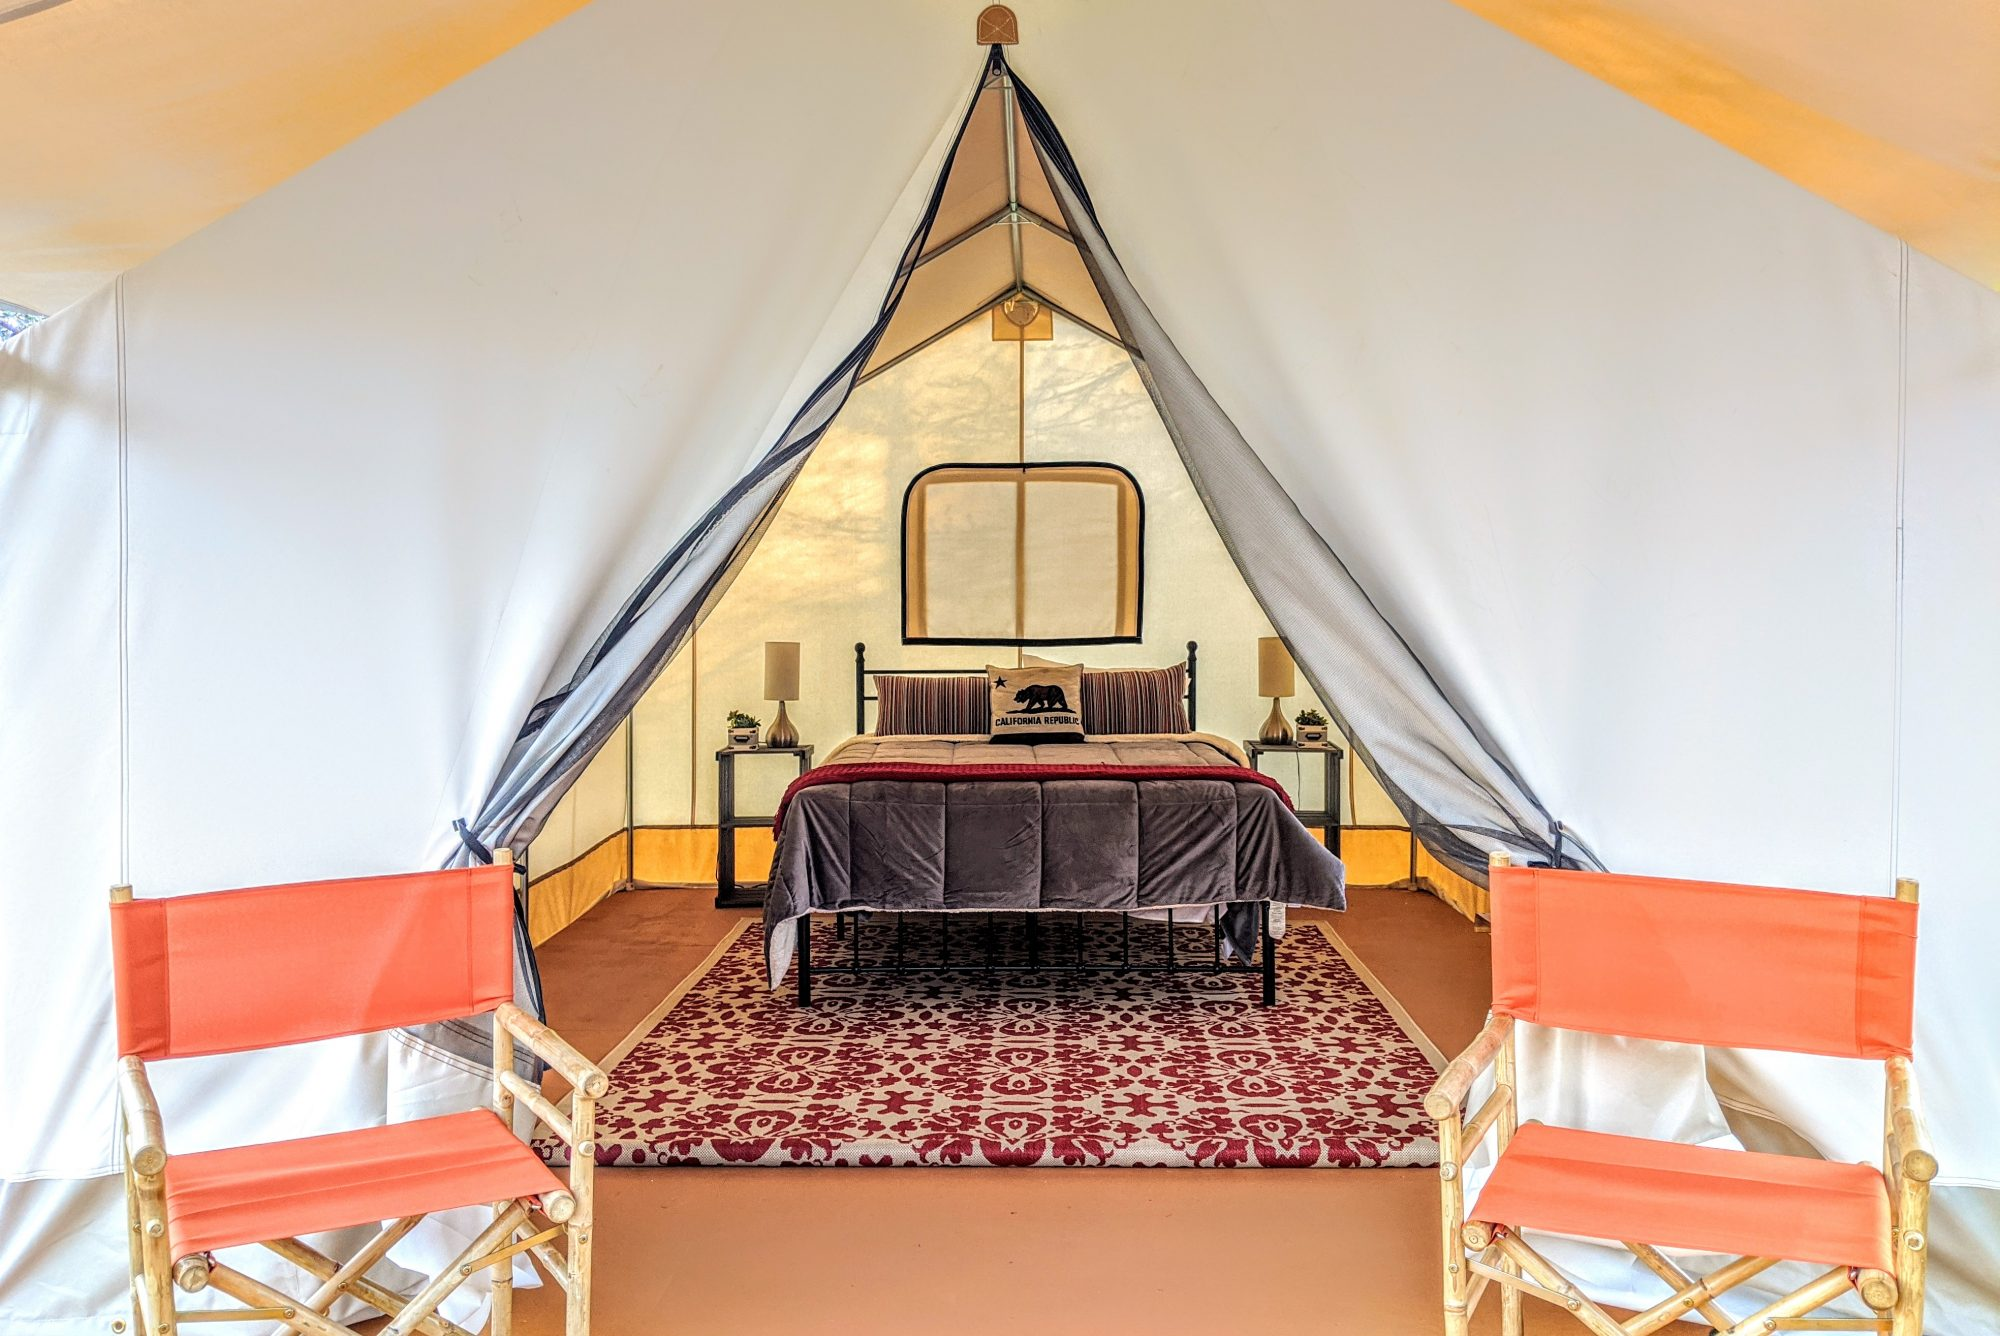 Wildhaven Sonoma - Glamping Tent deck -Credit Wildhaven Sonoma